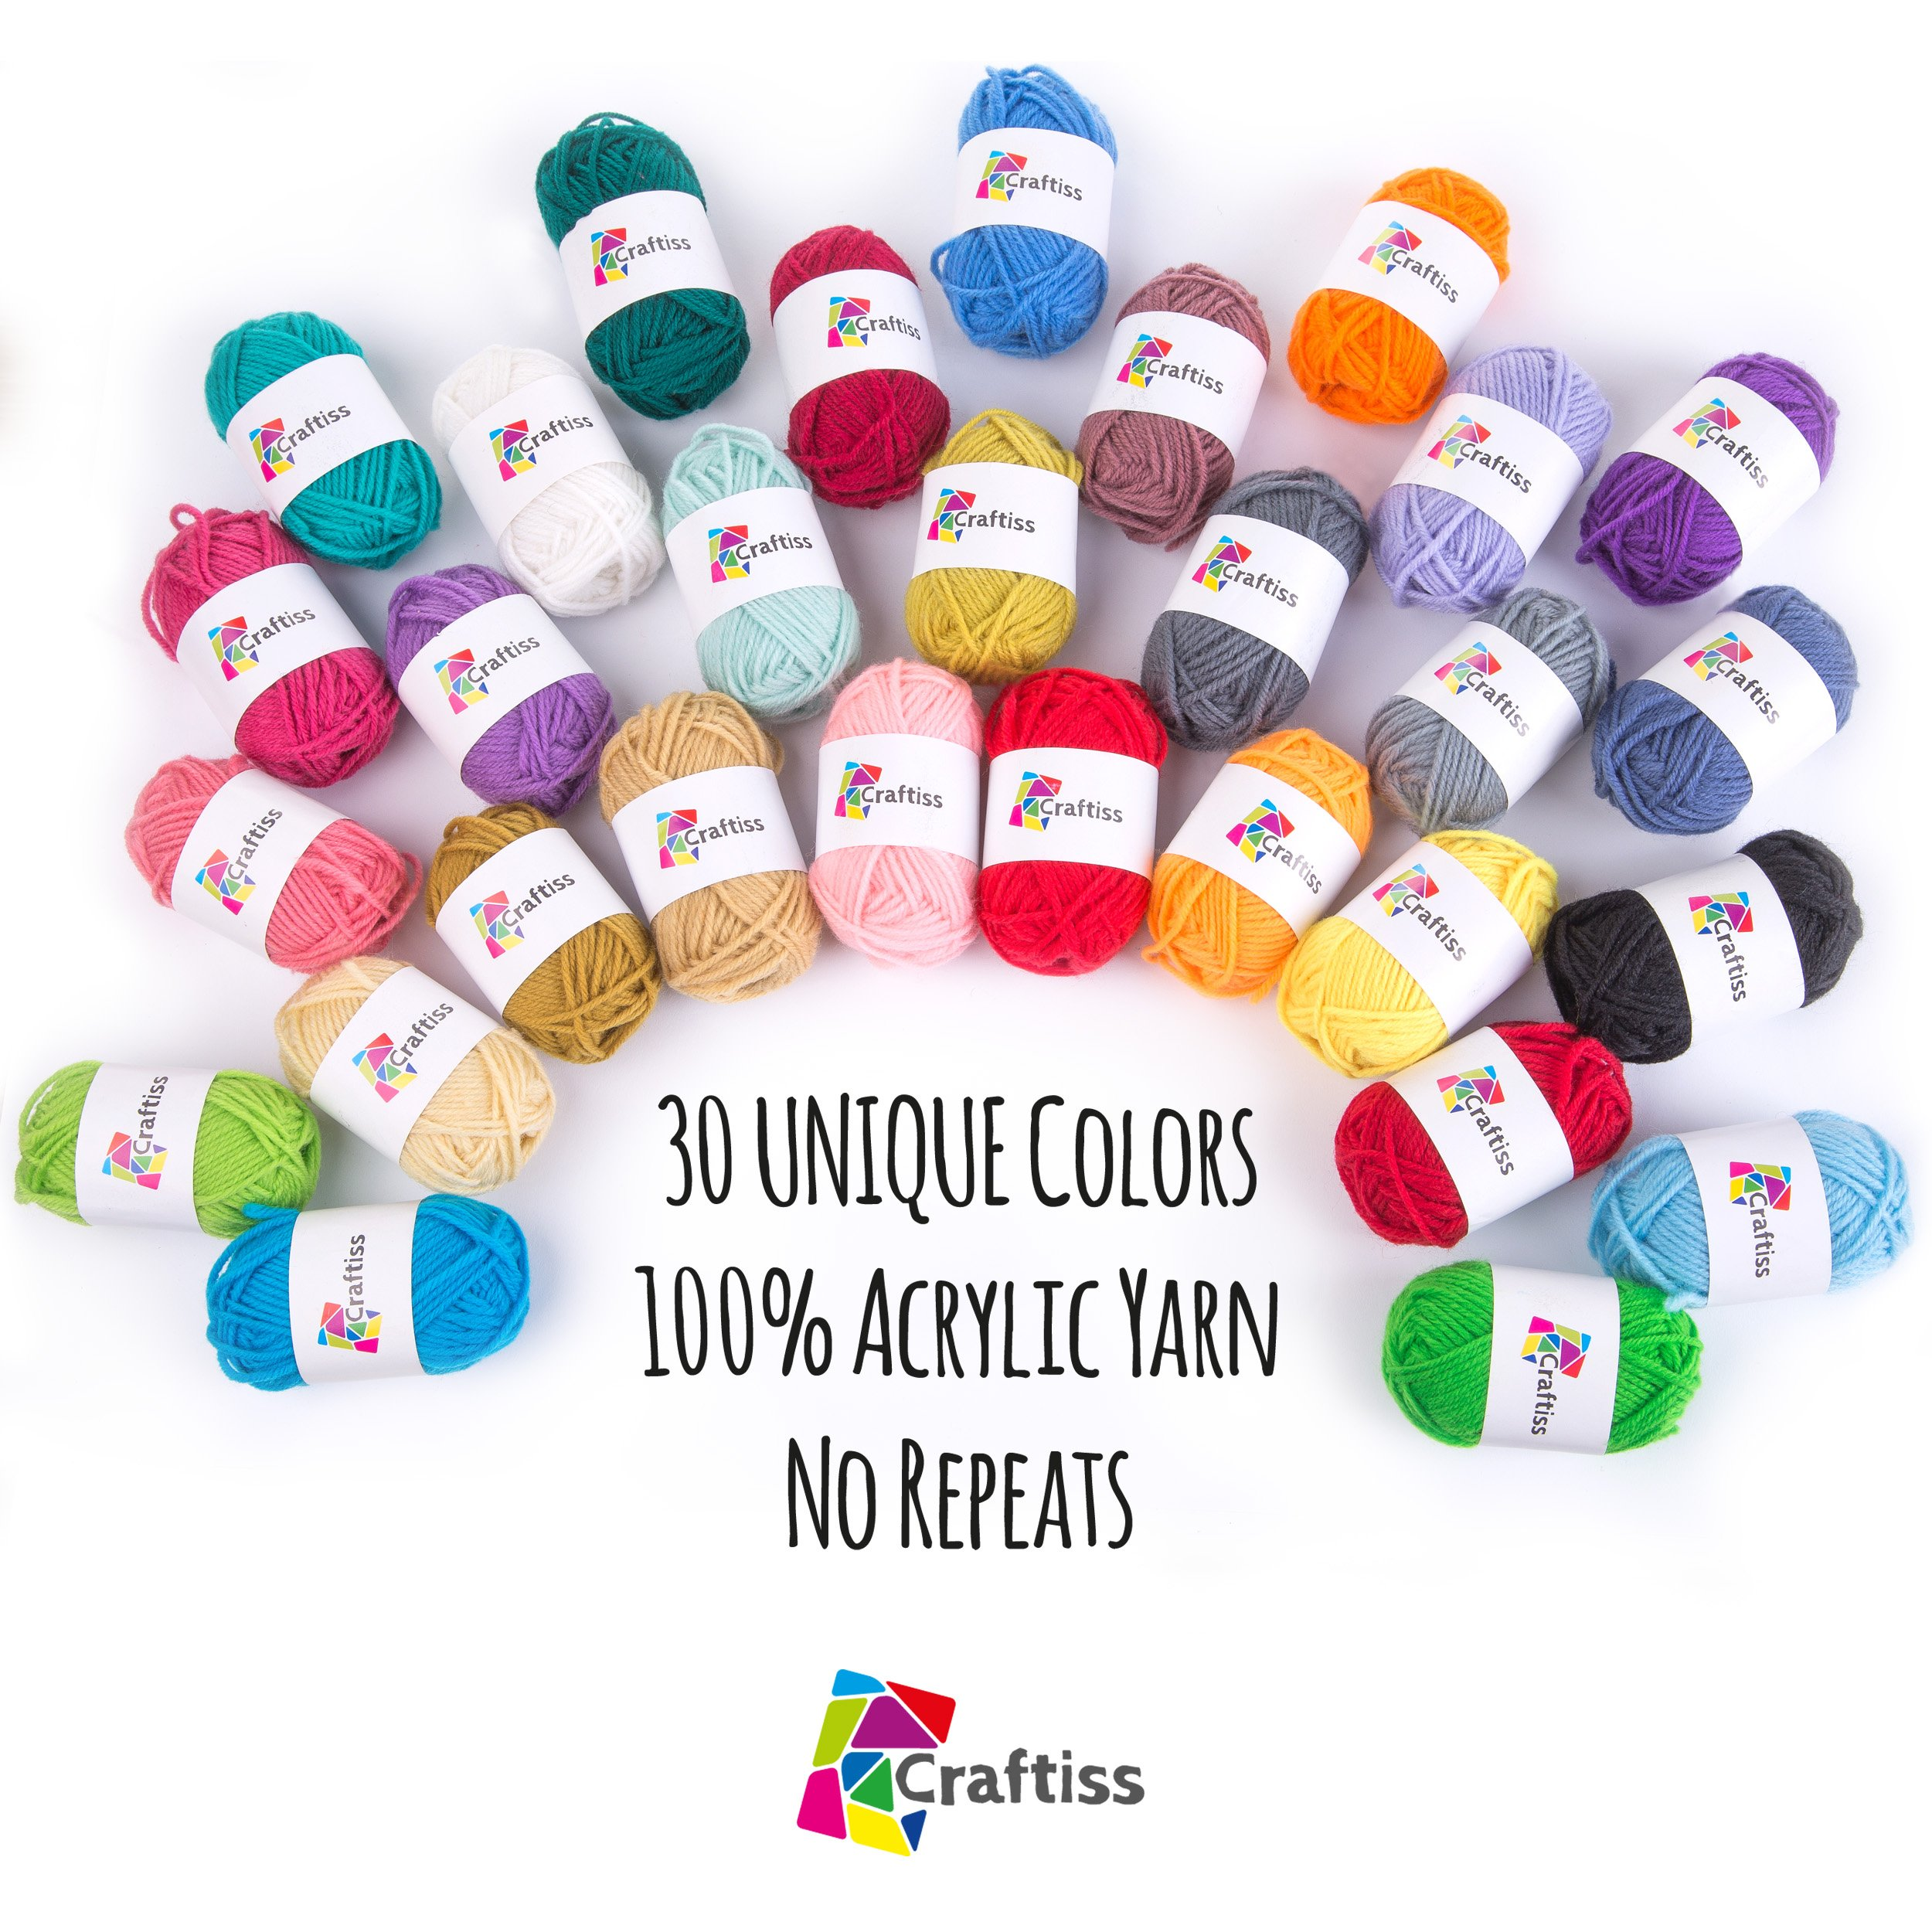 Craftiss 30 Unique Colors Acrylic Yarn Skeins ~ Bulk Yarn Kit ~ 1300 yards ~ Perfect for Any Knitting and Crochet Mini Project by Craftiss (Image #2)